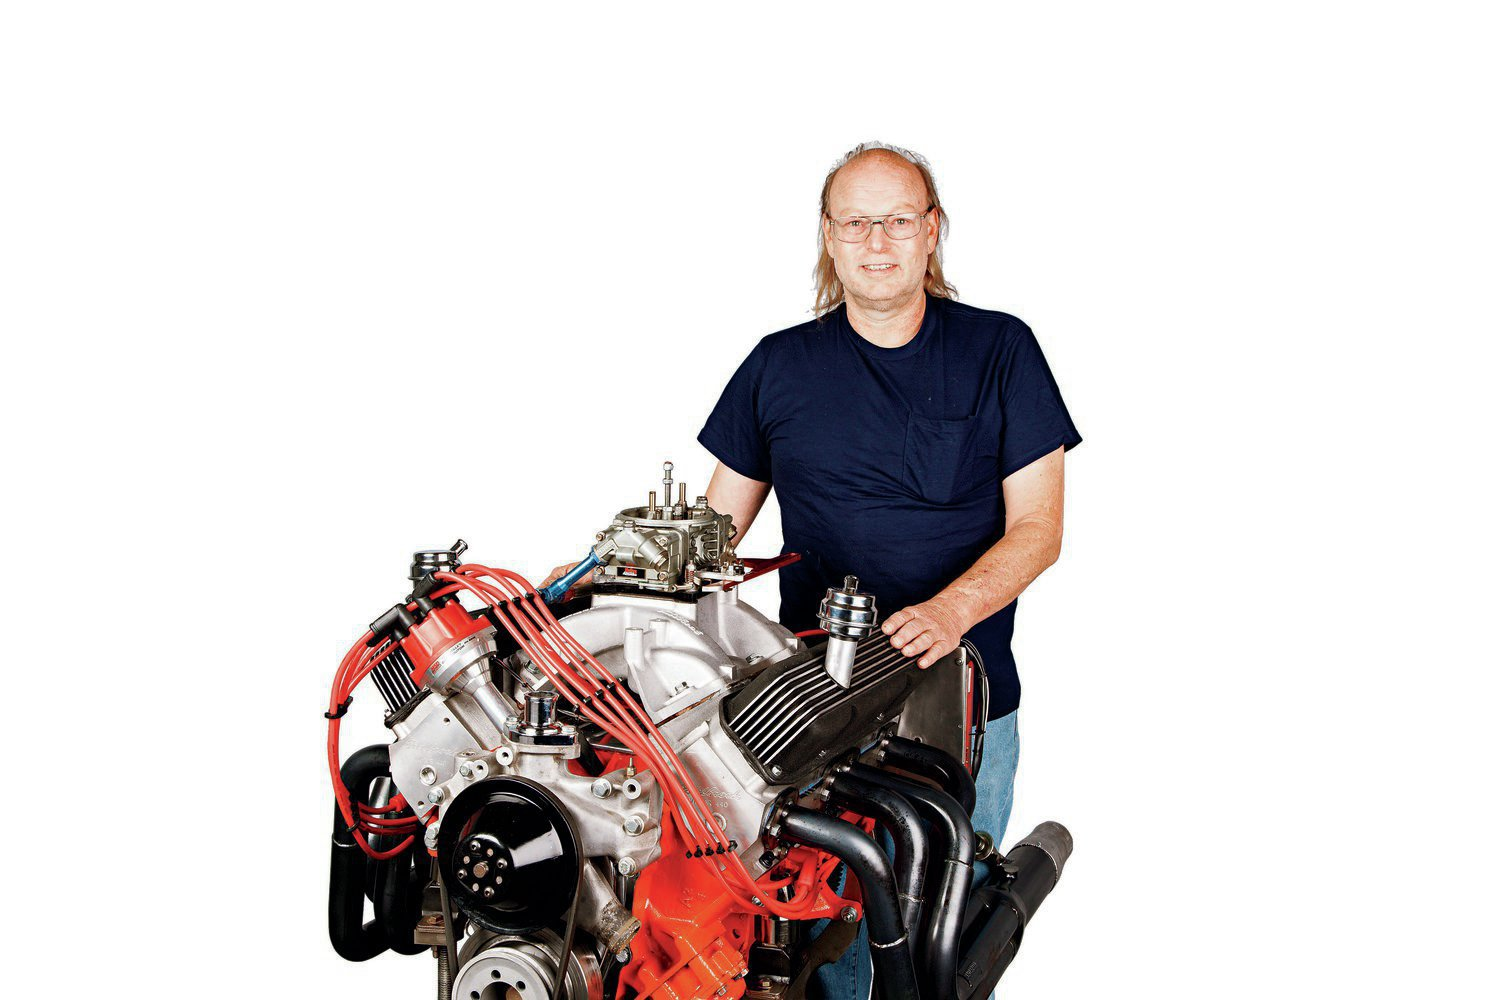 Clark Hinkle fielded this 412 Mopar in the Street Division of the 2012 AMSOIL Engine Masters Challenge. Problems in competition prevented the engine from reaching its full potential at the event, but the engineering and craftsmanship was evident to all.